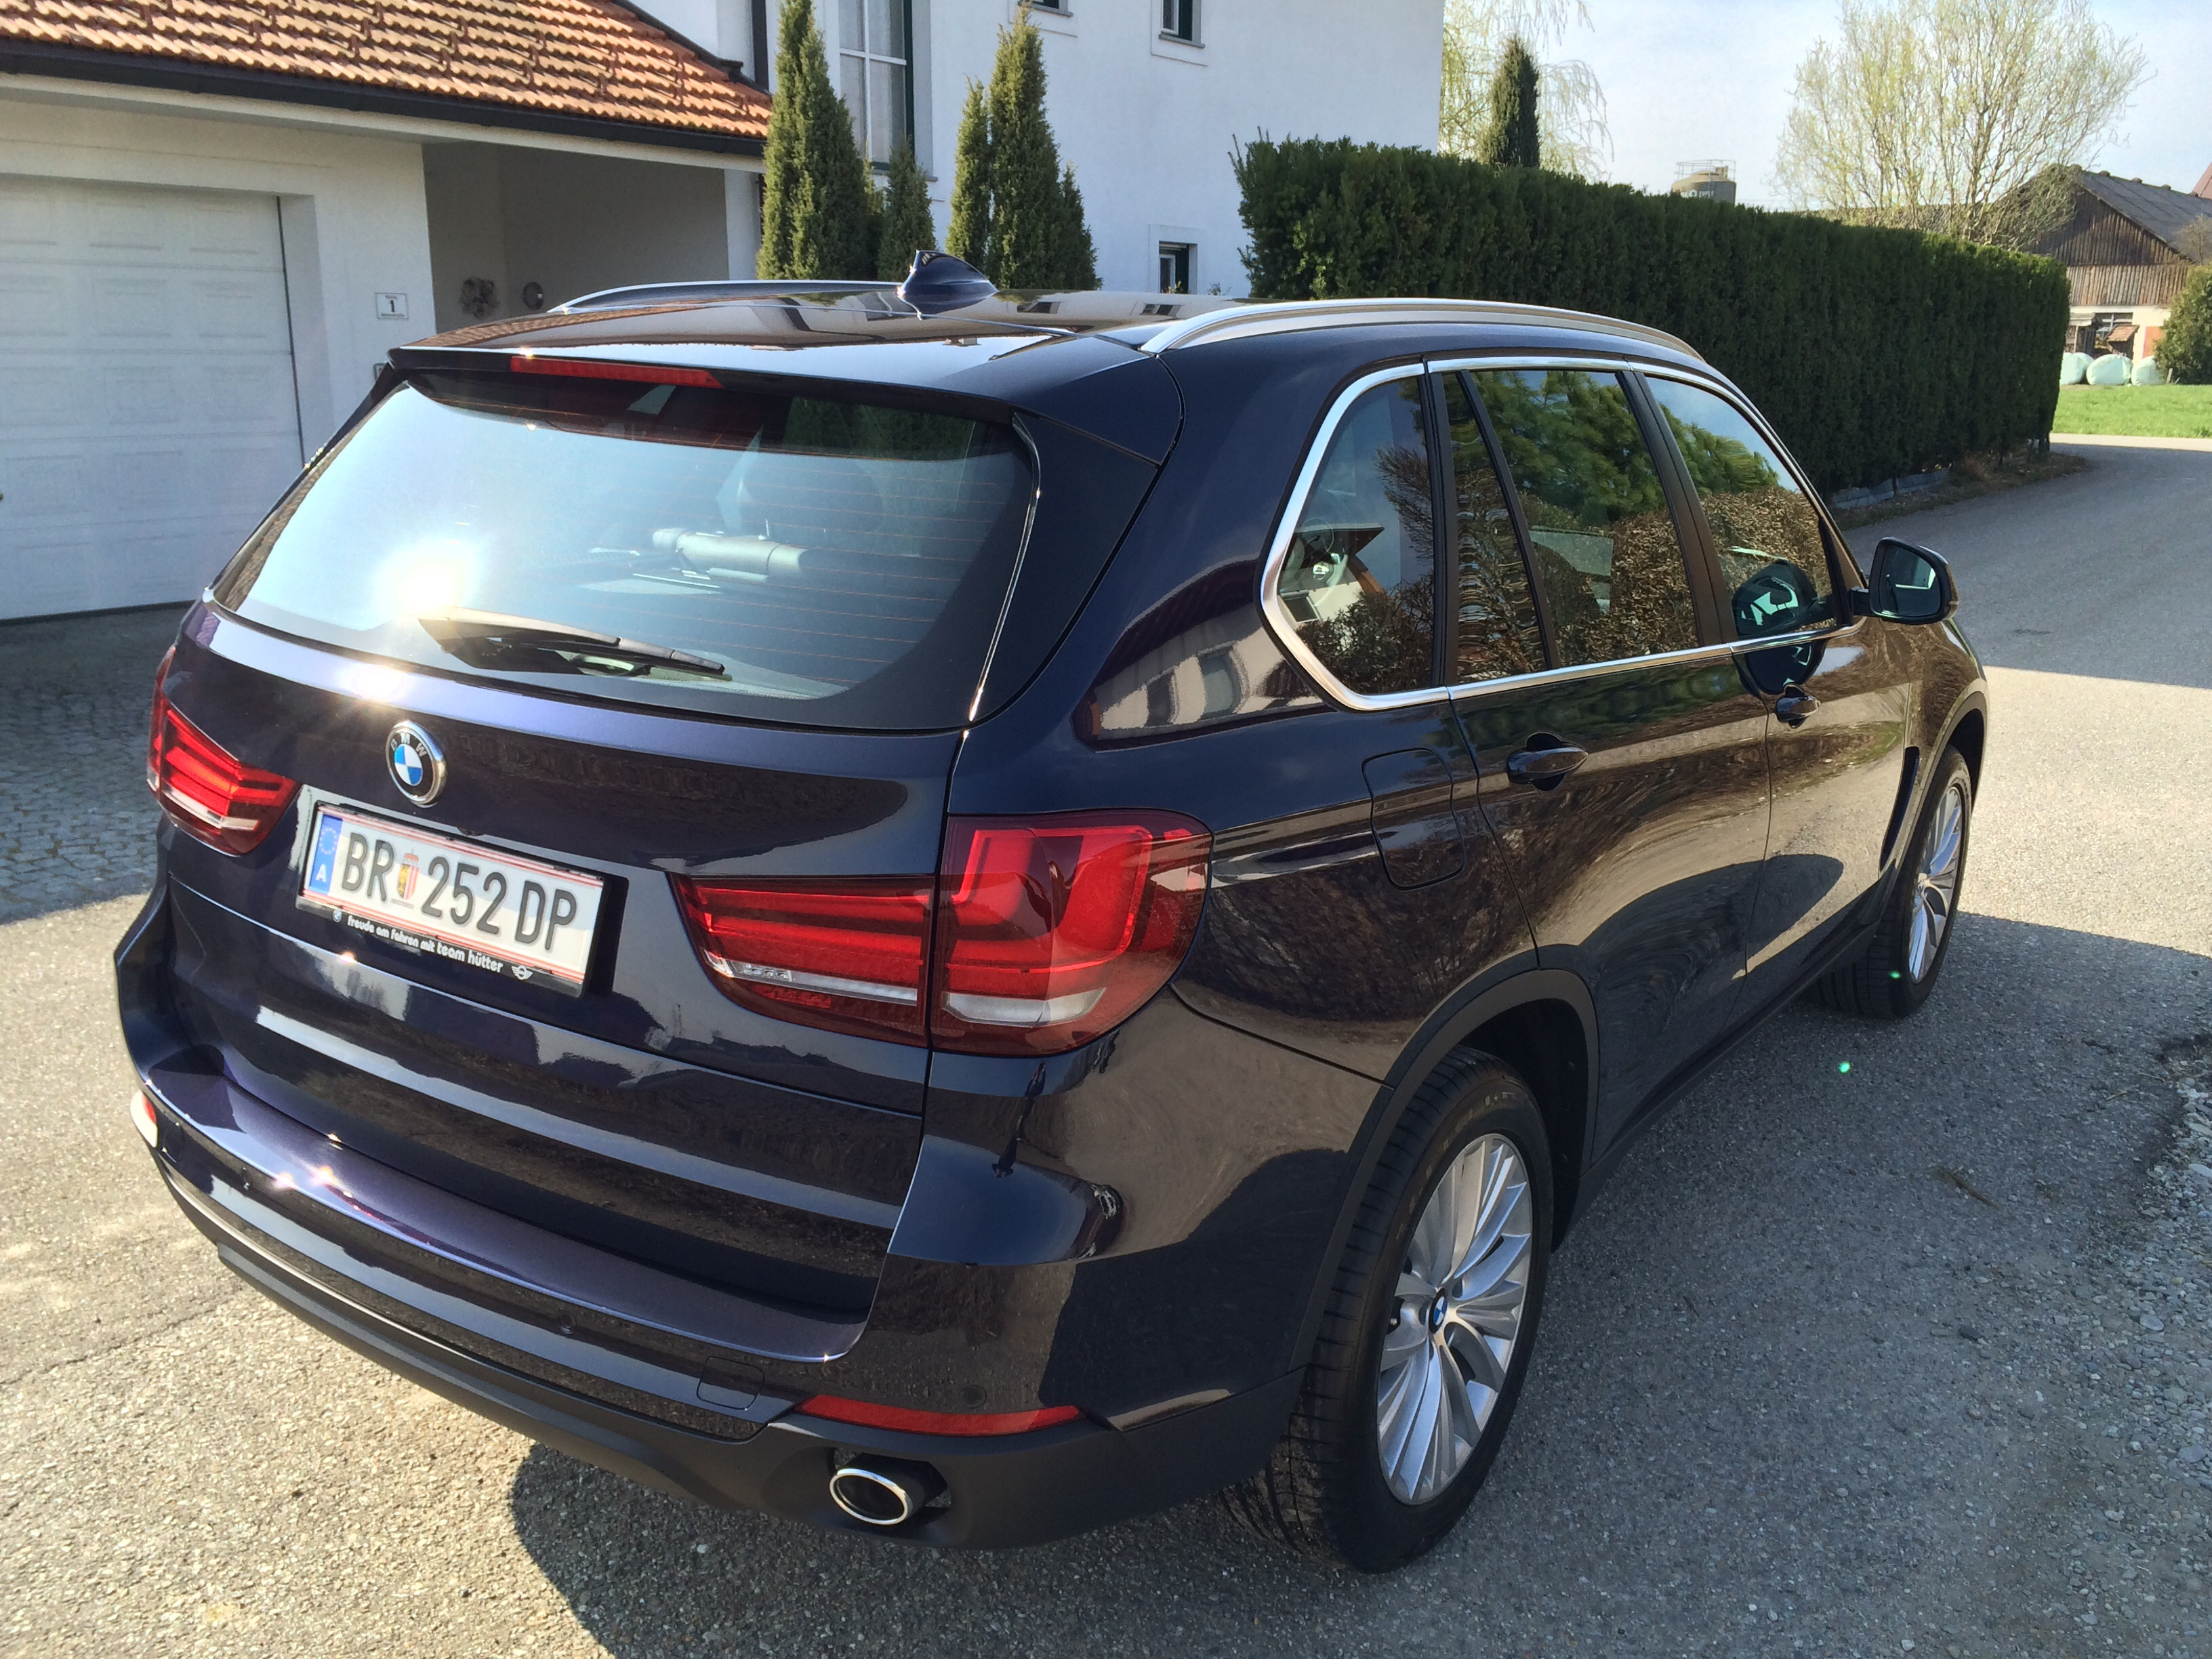 2001 bmw x5 with Image I207638741 on Bmw Pferde I203541871 together with Mercedes Benz C Class Fb0057dcad17a697 furthermore Bangle Butt in addition 2001 Bmw X5 4 4l Sport Silver Black 120652 together with Sicherungskasten I203722648.